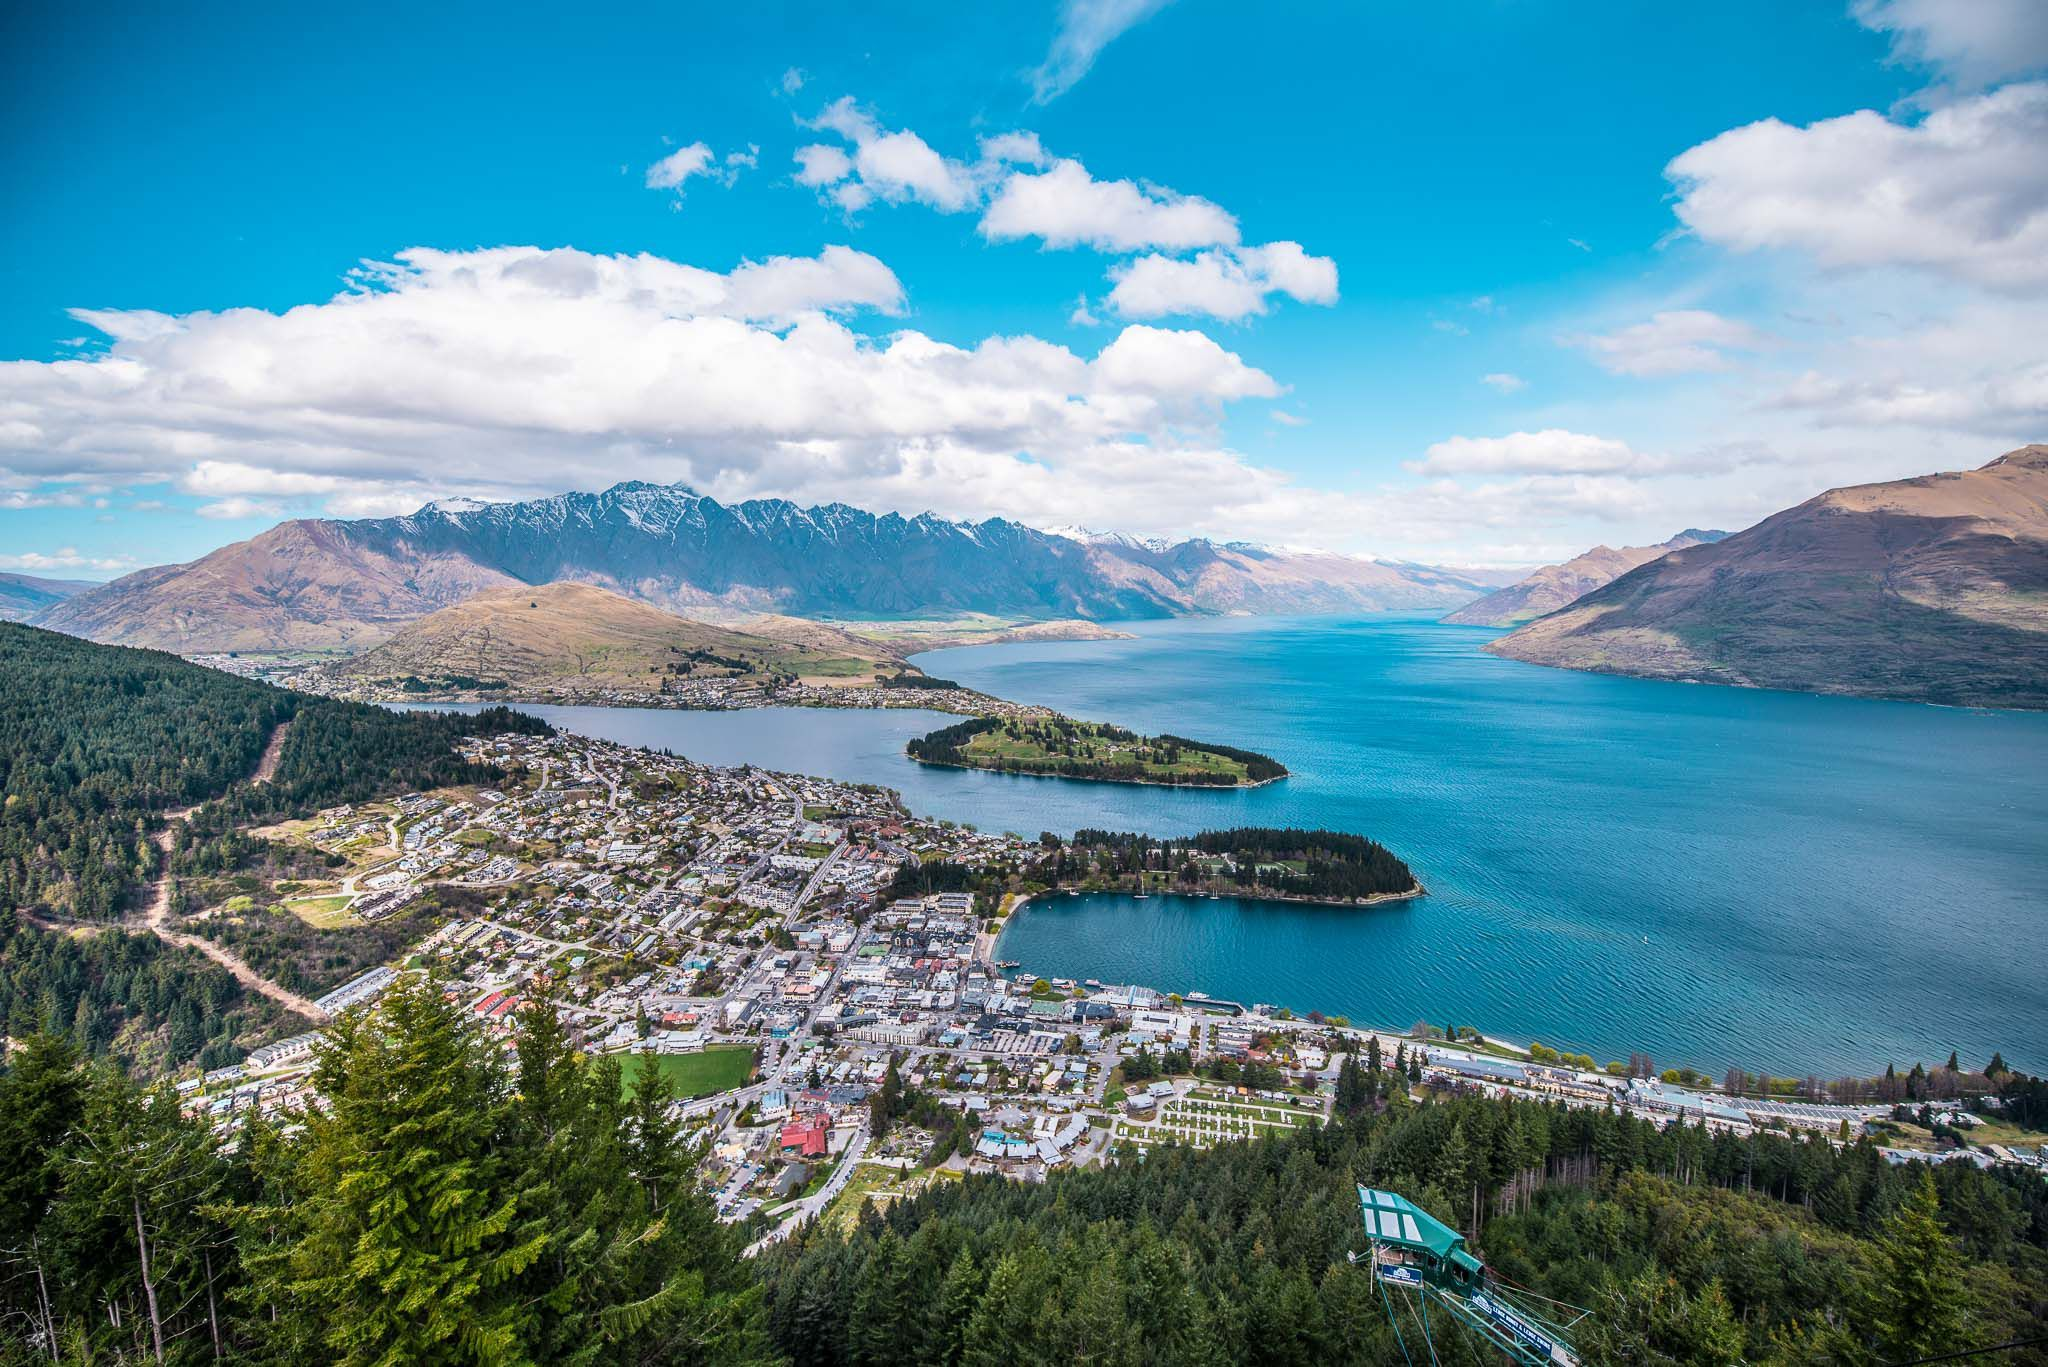 Ledge bungy Jumping Queenstown 2019